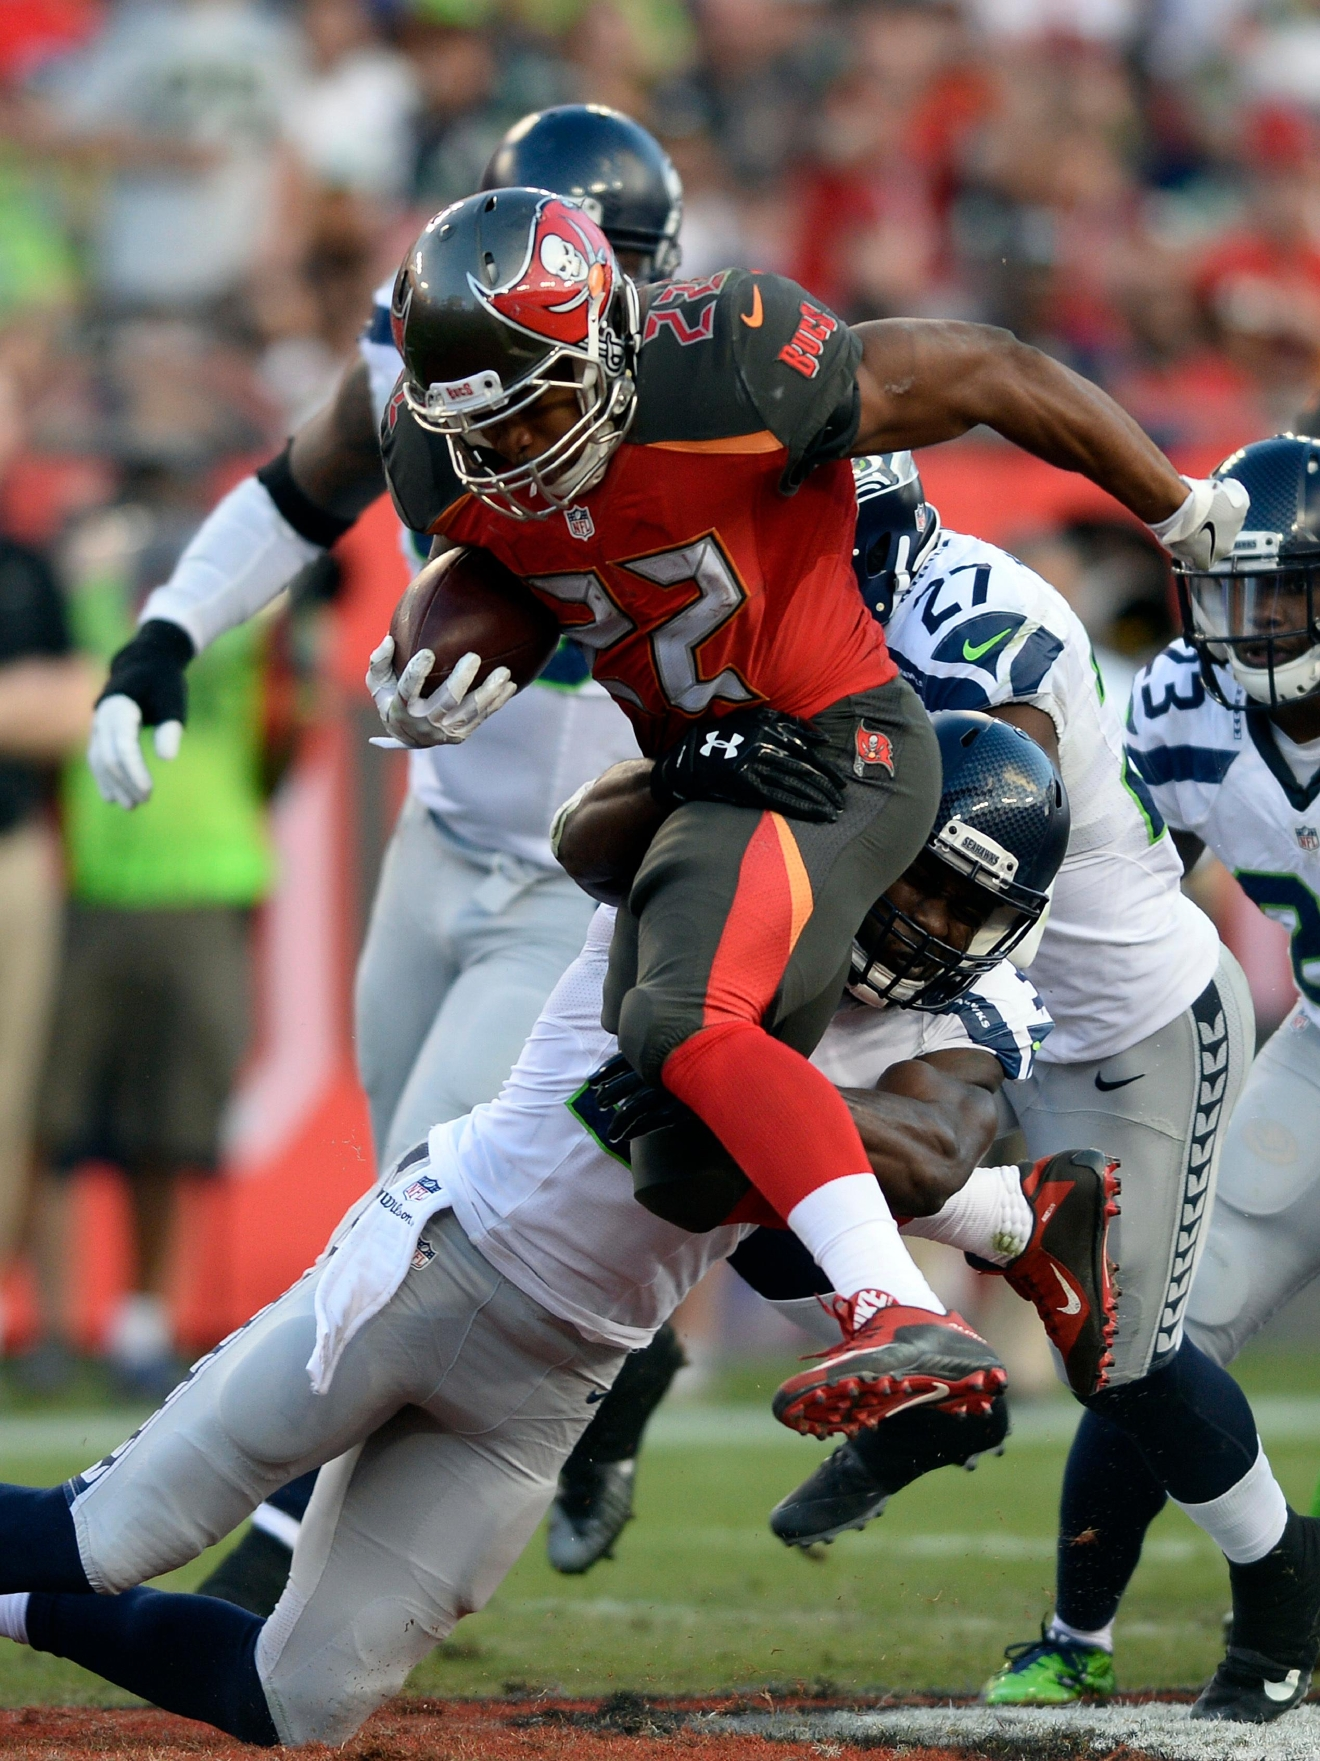 Tampa Bay Buccaneers running back Doug Martin (22) is lifted off the turf by Seattle Seahawks strong safety Kam Chancellor (31) during the second quarter of an NFL football game Sunday, Nov. 27, 2016, in Tampa, Fla. (AP Photo/Jason Behnken)